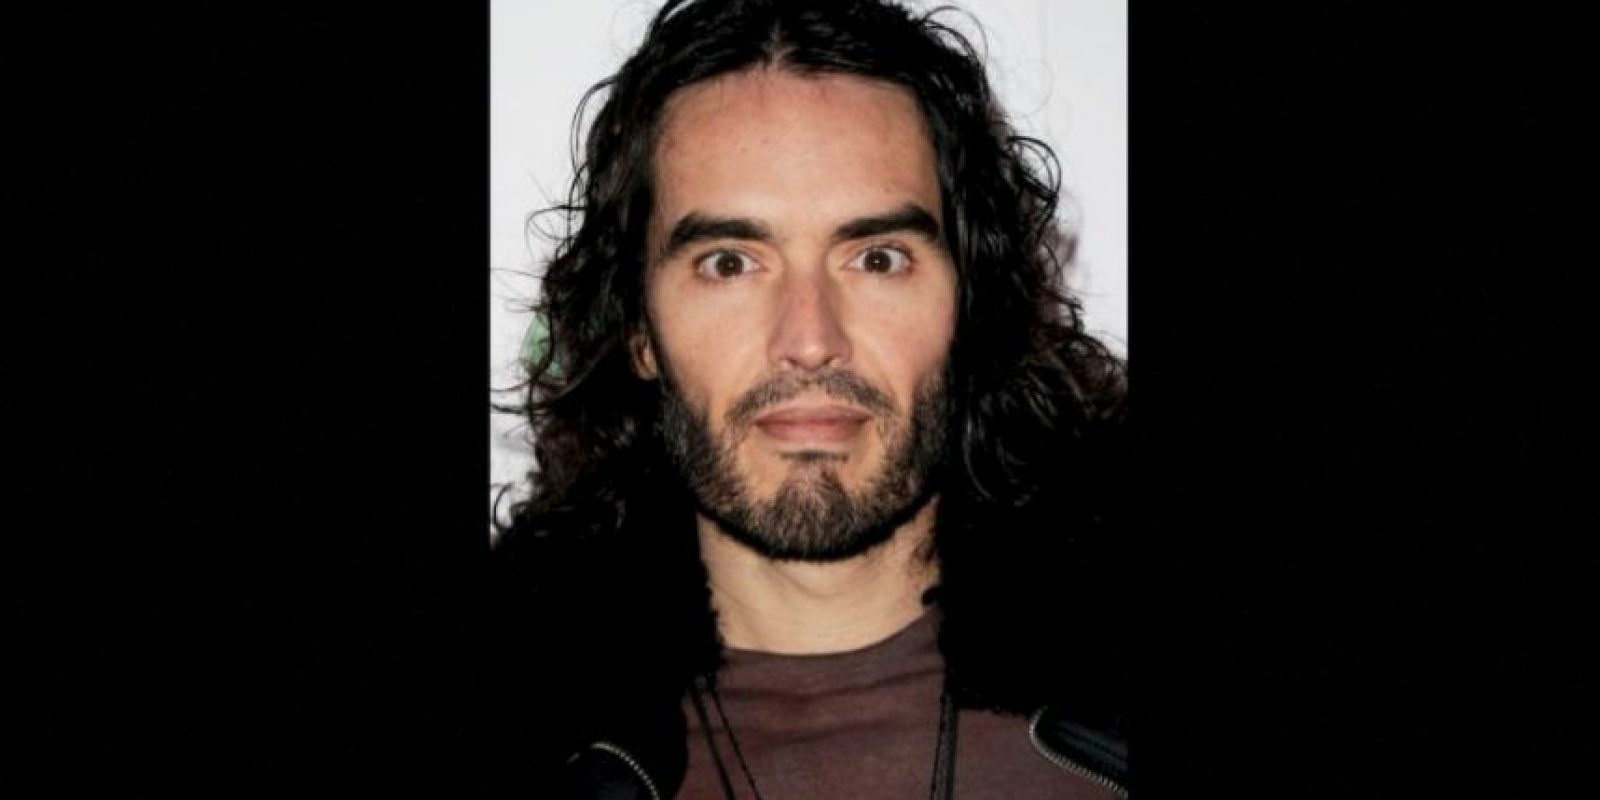 Russell Brand Foto:Getty Images